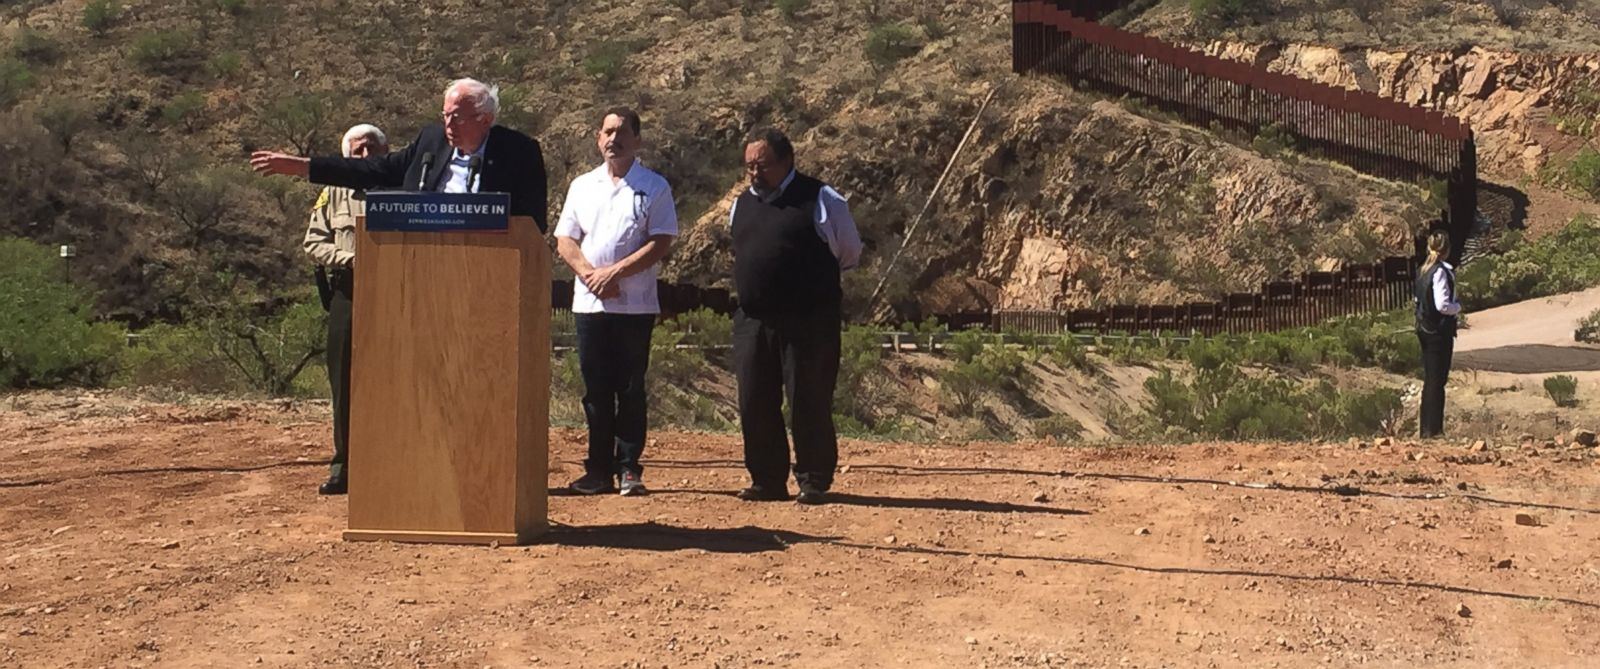 PHOTO: Democratic presidential candidate Bernie Sanders speaks in Arizona near the Mexican border on March 19, 2016.